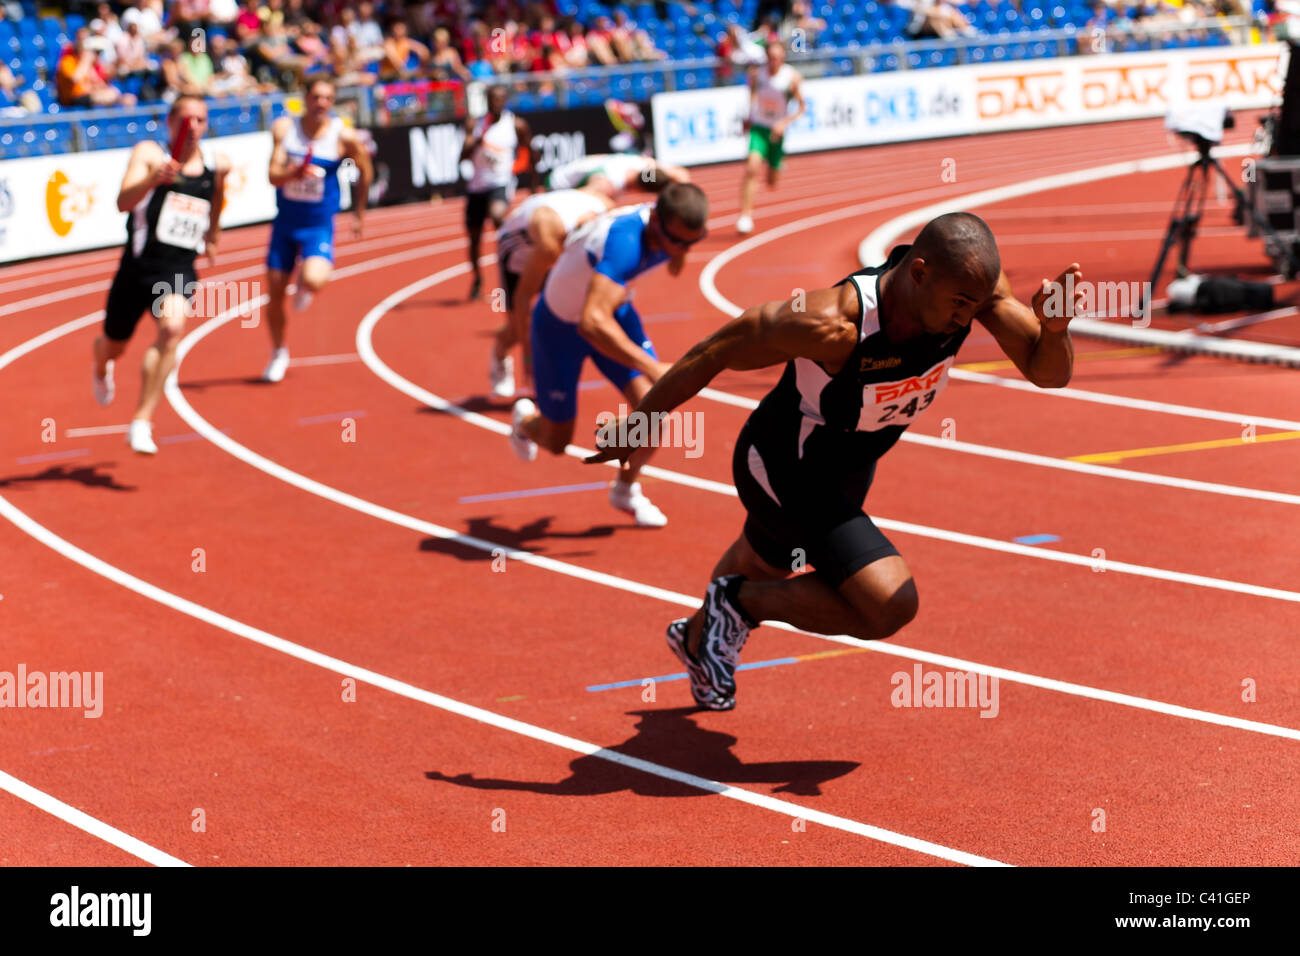 High resolution image of some sprinters starting to take the baton at athletics event. - Stock Image